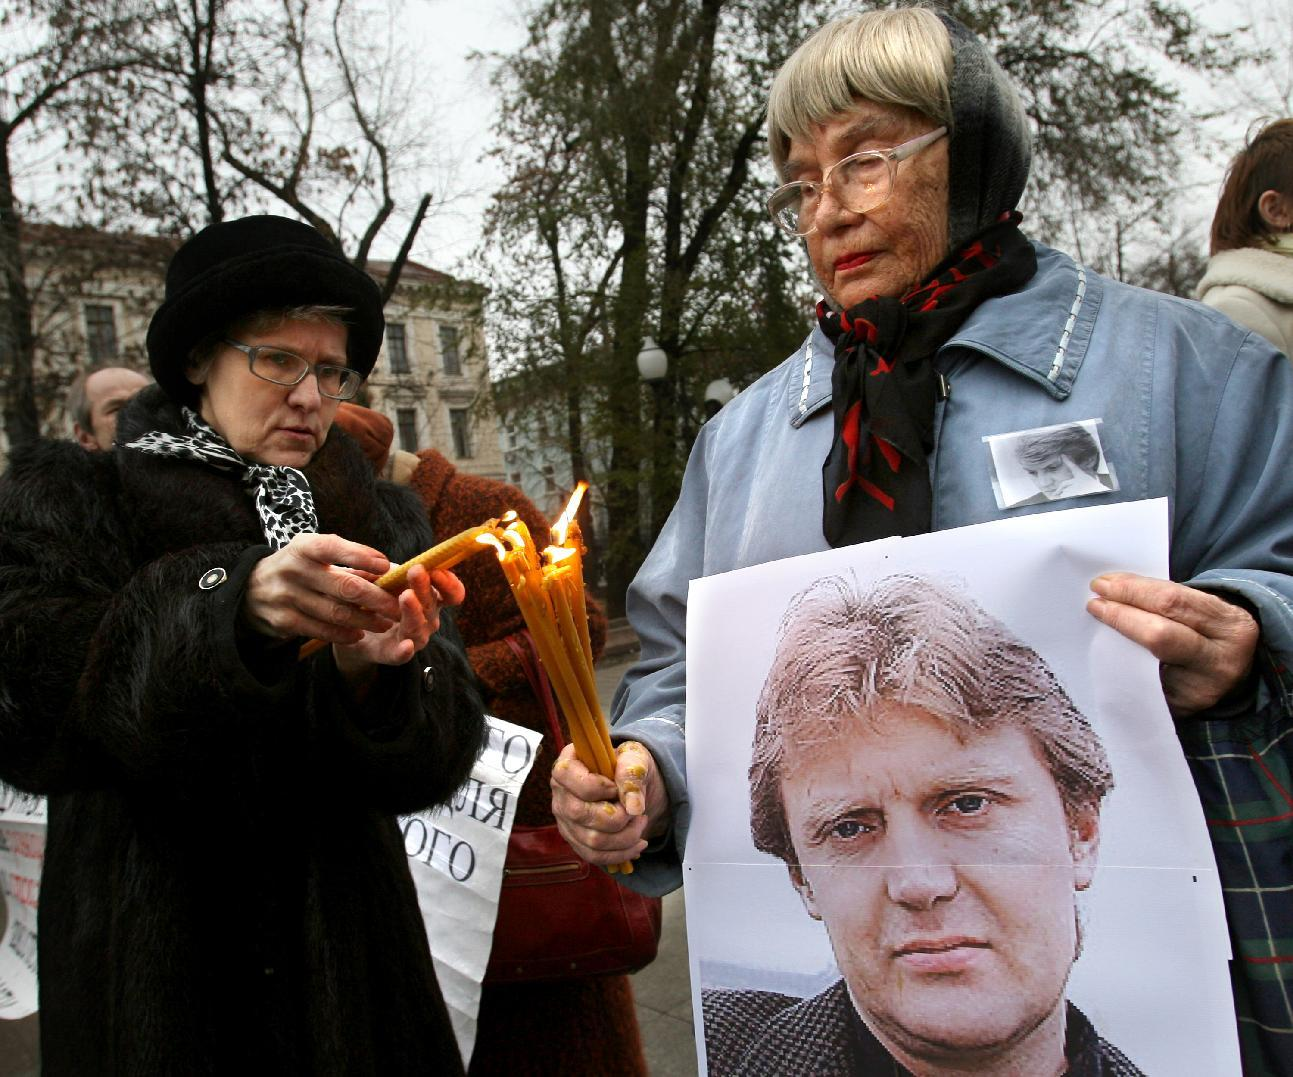 'Sense of duty': Litvinenko's widow hopes for answers